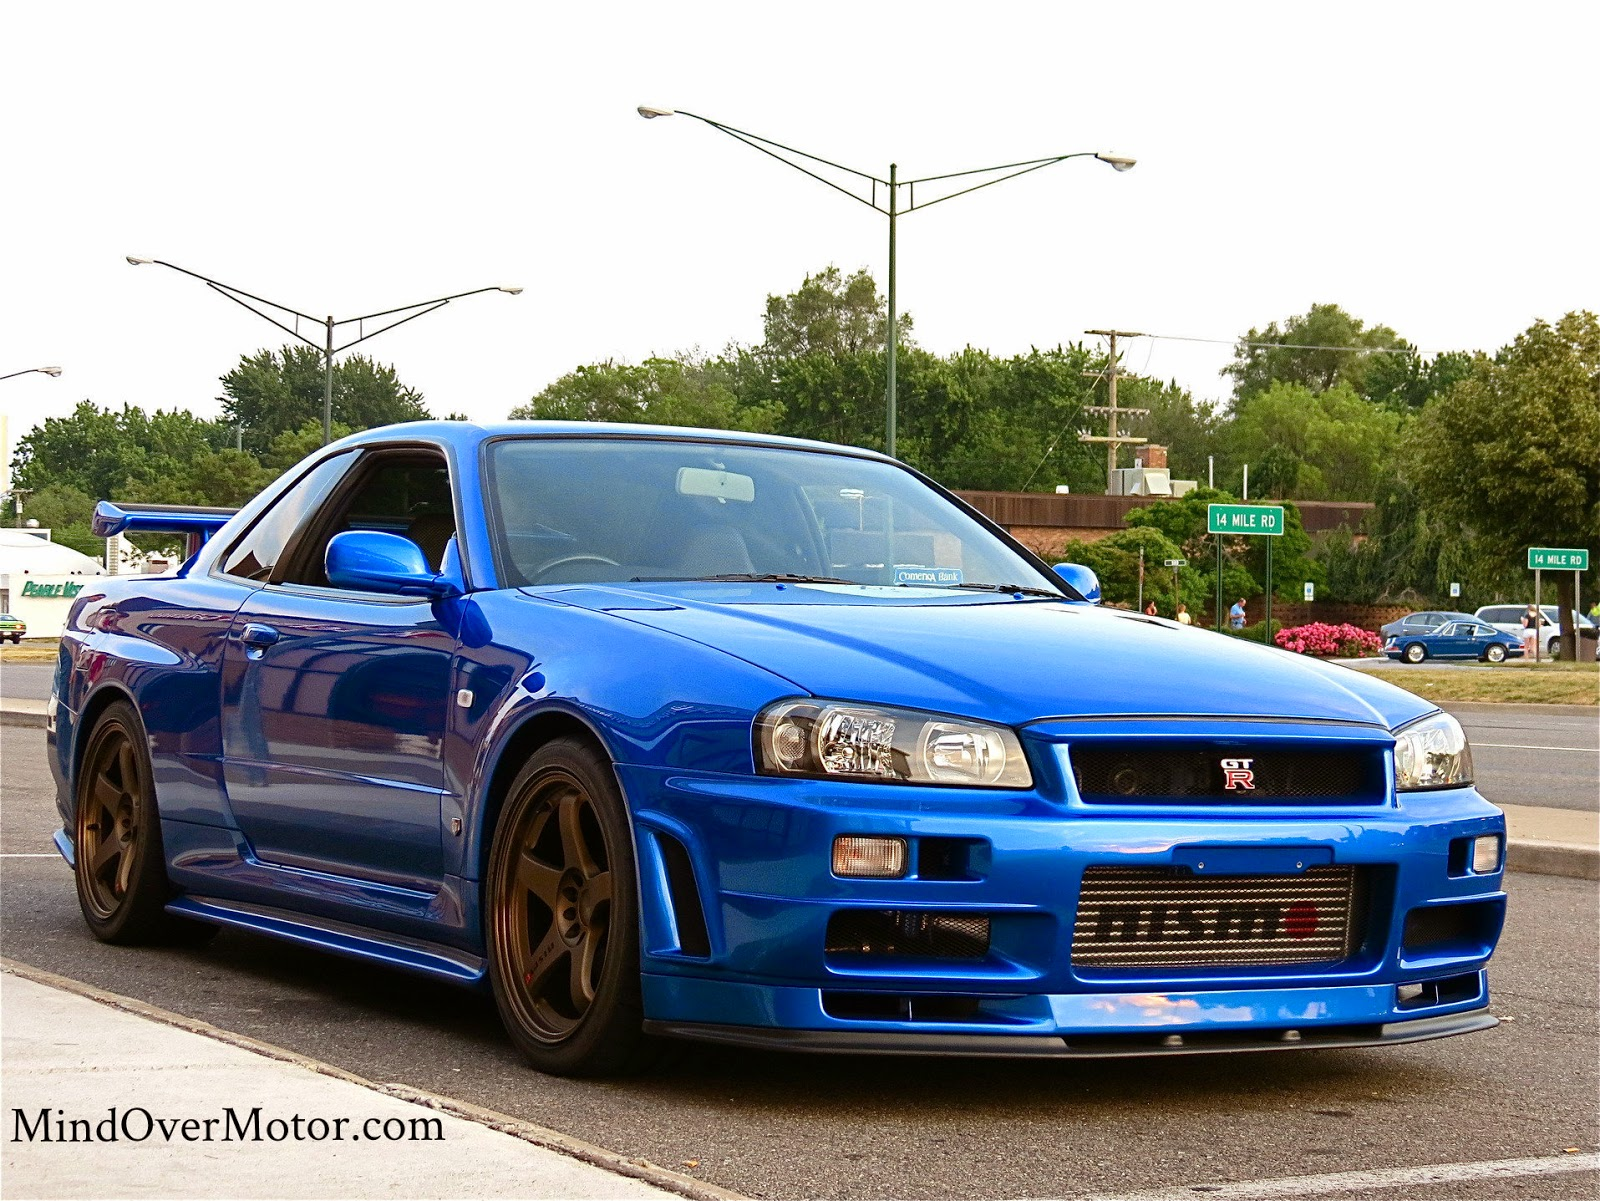 Fast cars here !: The R34 GT-R Skyline